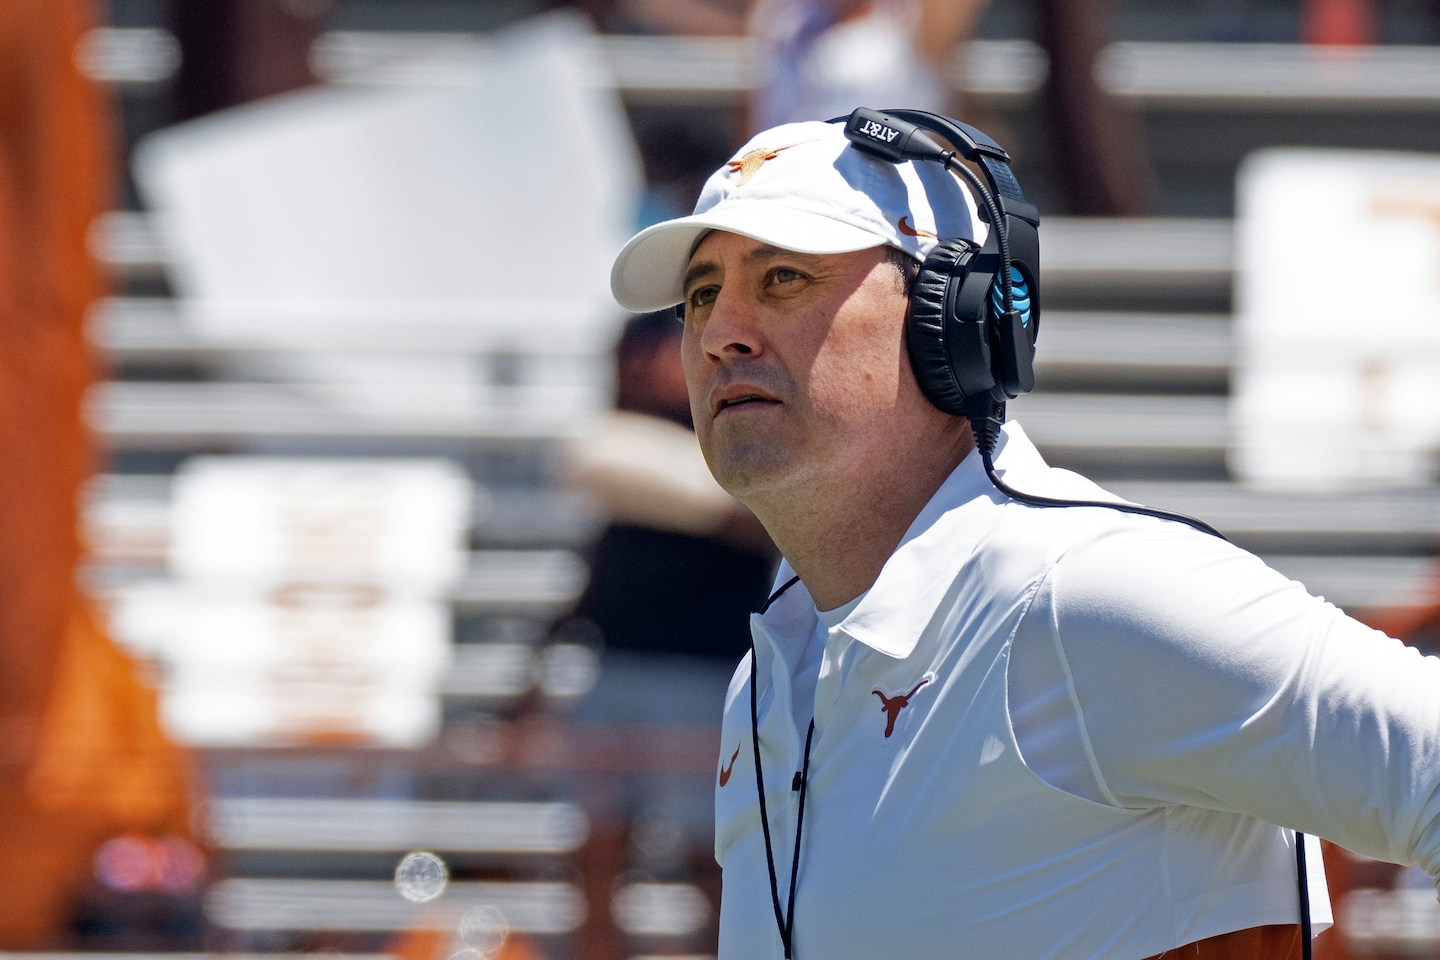 Texas still in Big 12 starts a new era with a new coach and QB